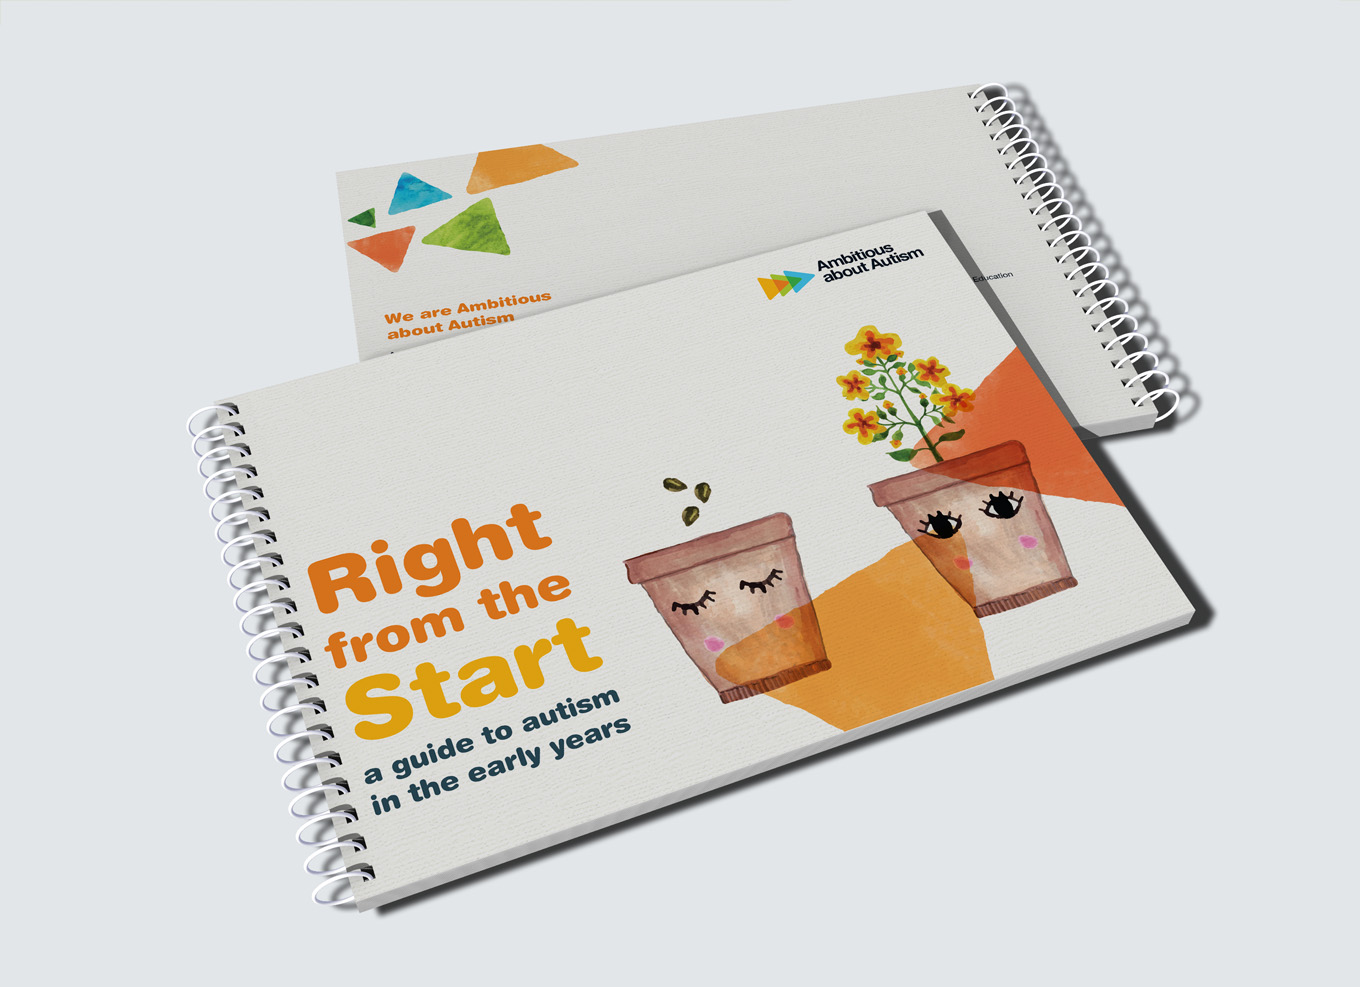 Ambitious about autism right from the start toolkit